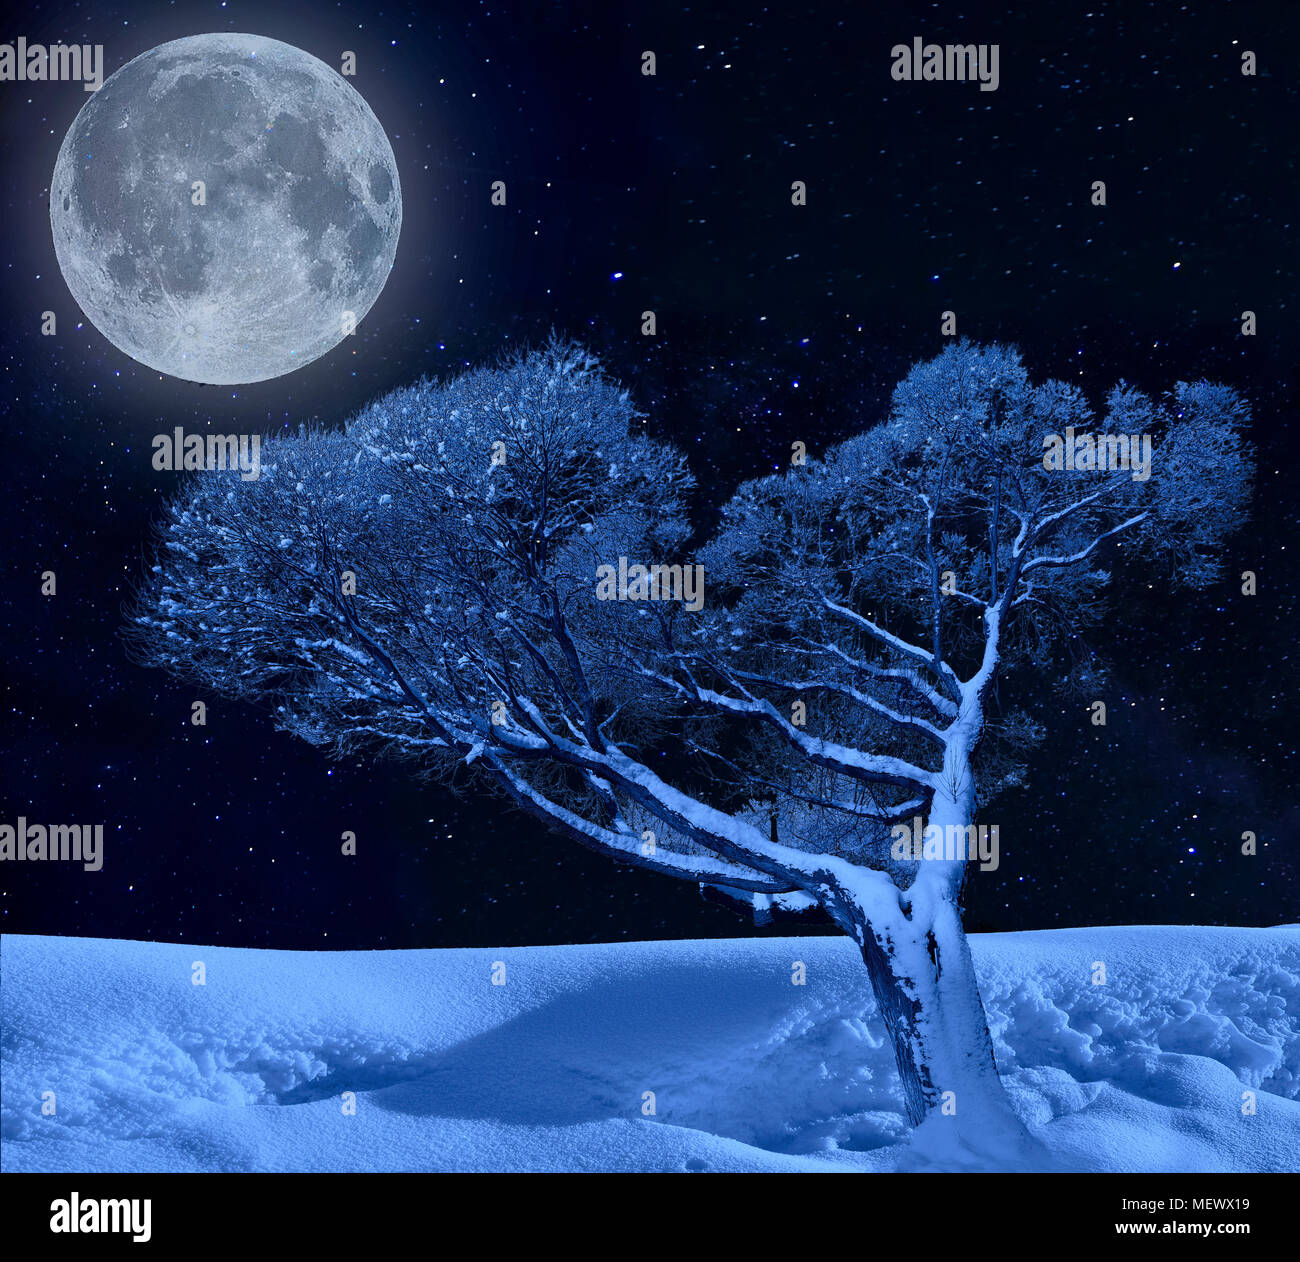 Lonely tree hoarfrost covered in moonlight and twinkle of winter starry night - fairy tale of winter nature - Stock Image